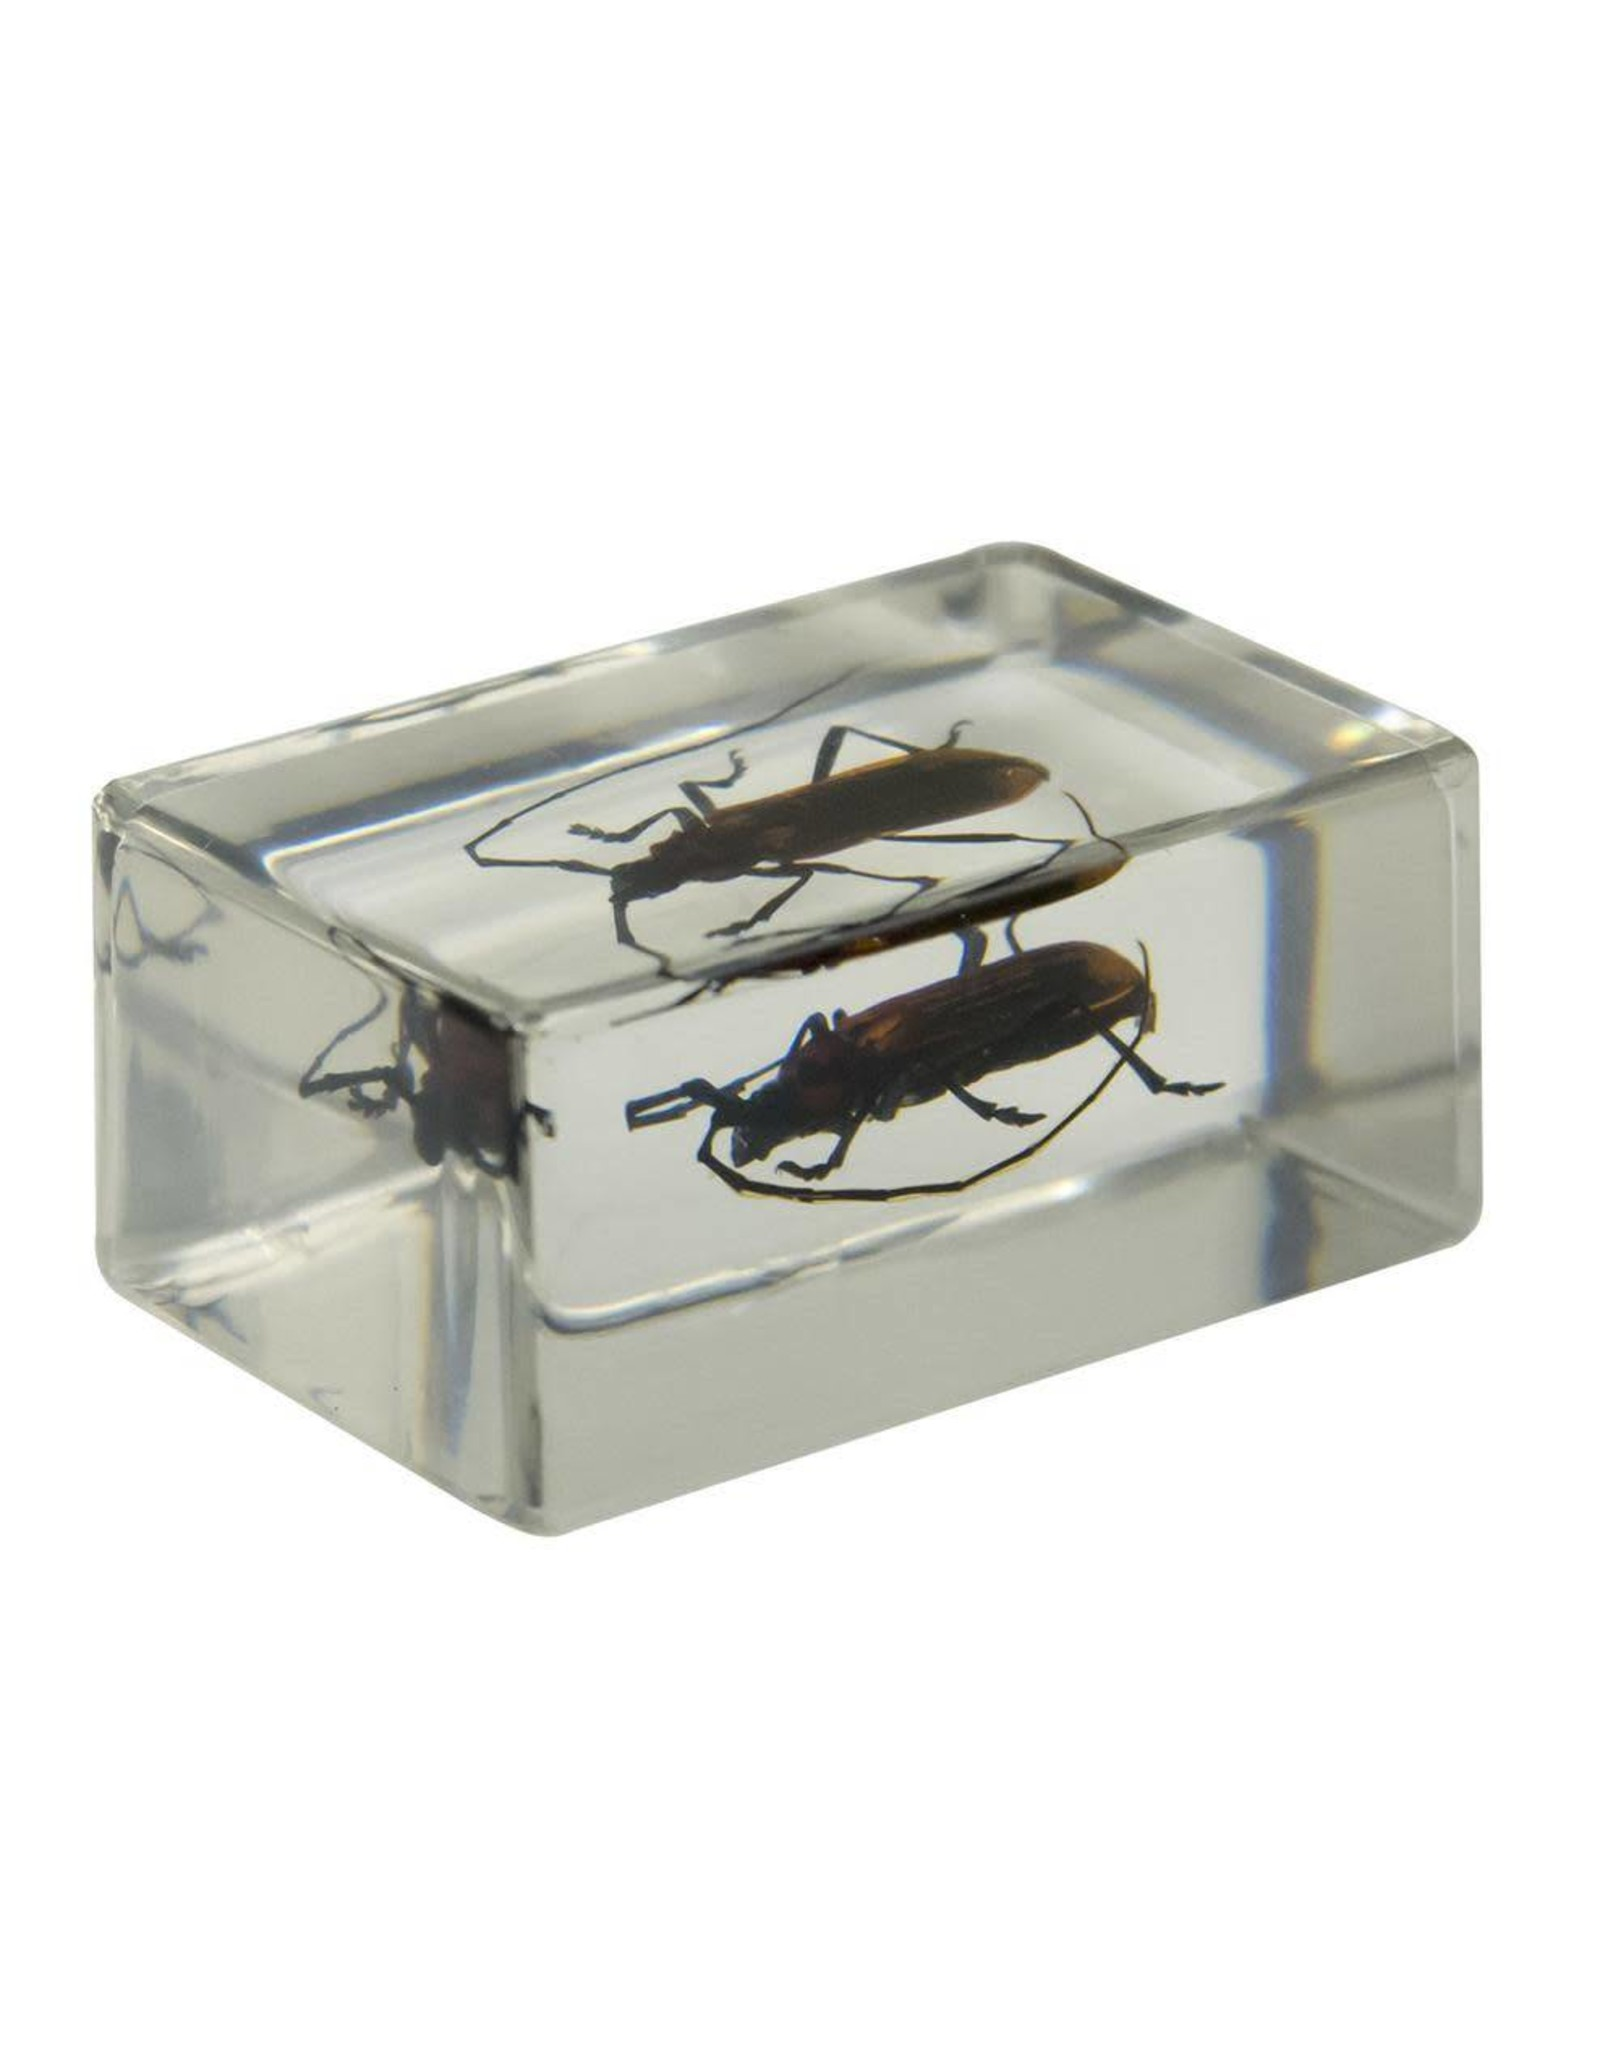 Celestron Celestron 3D Bug Specimen Kit #1(Limited Quantities)